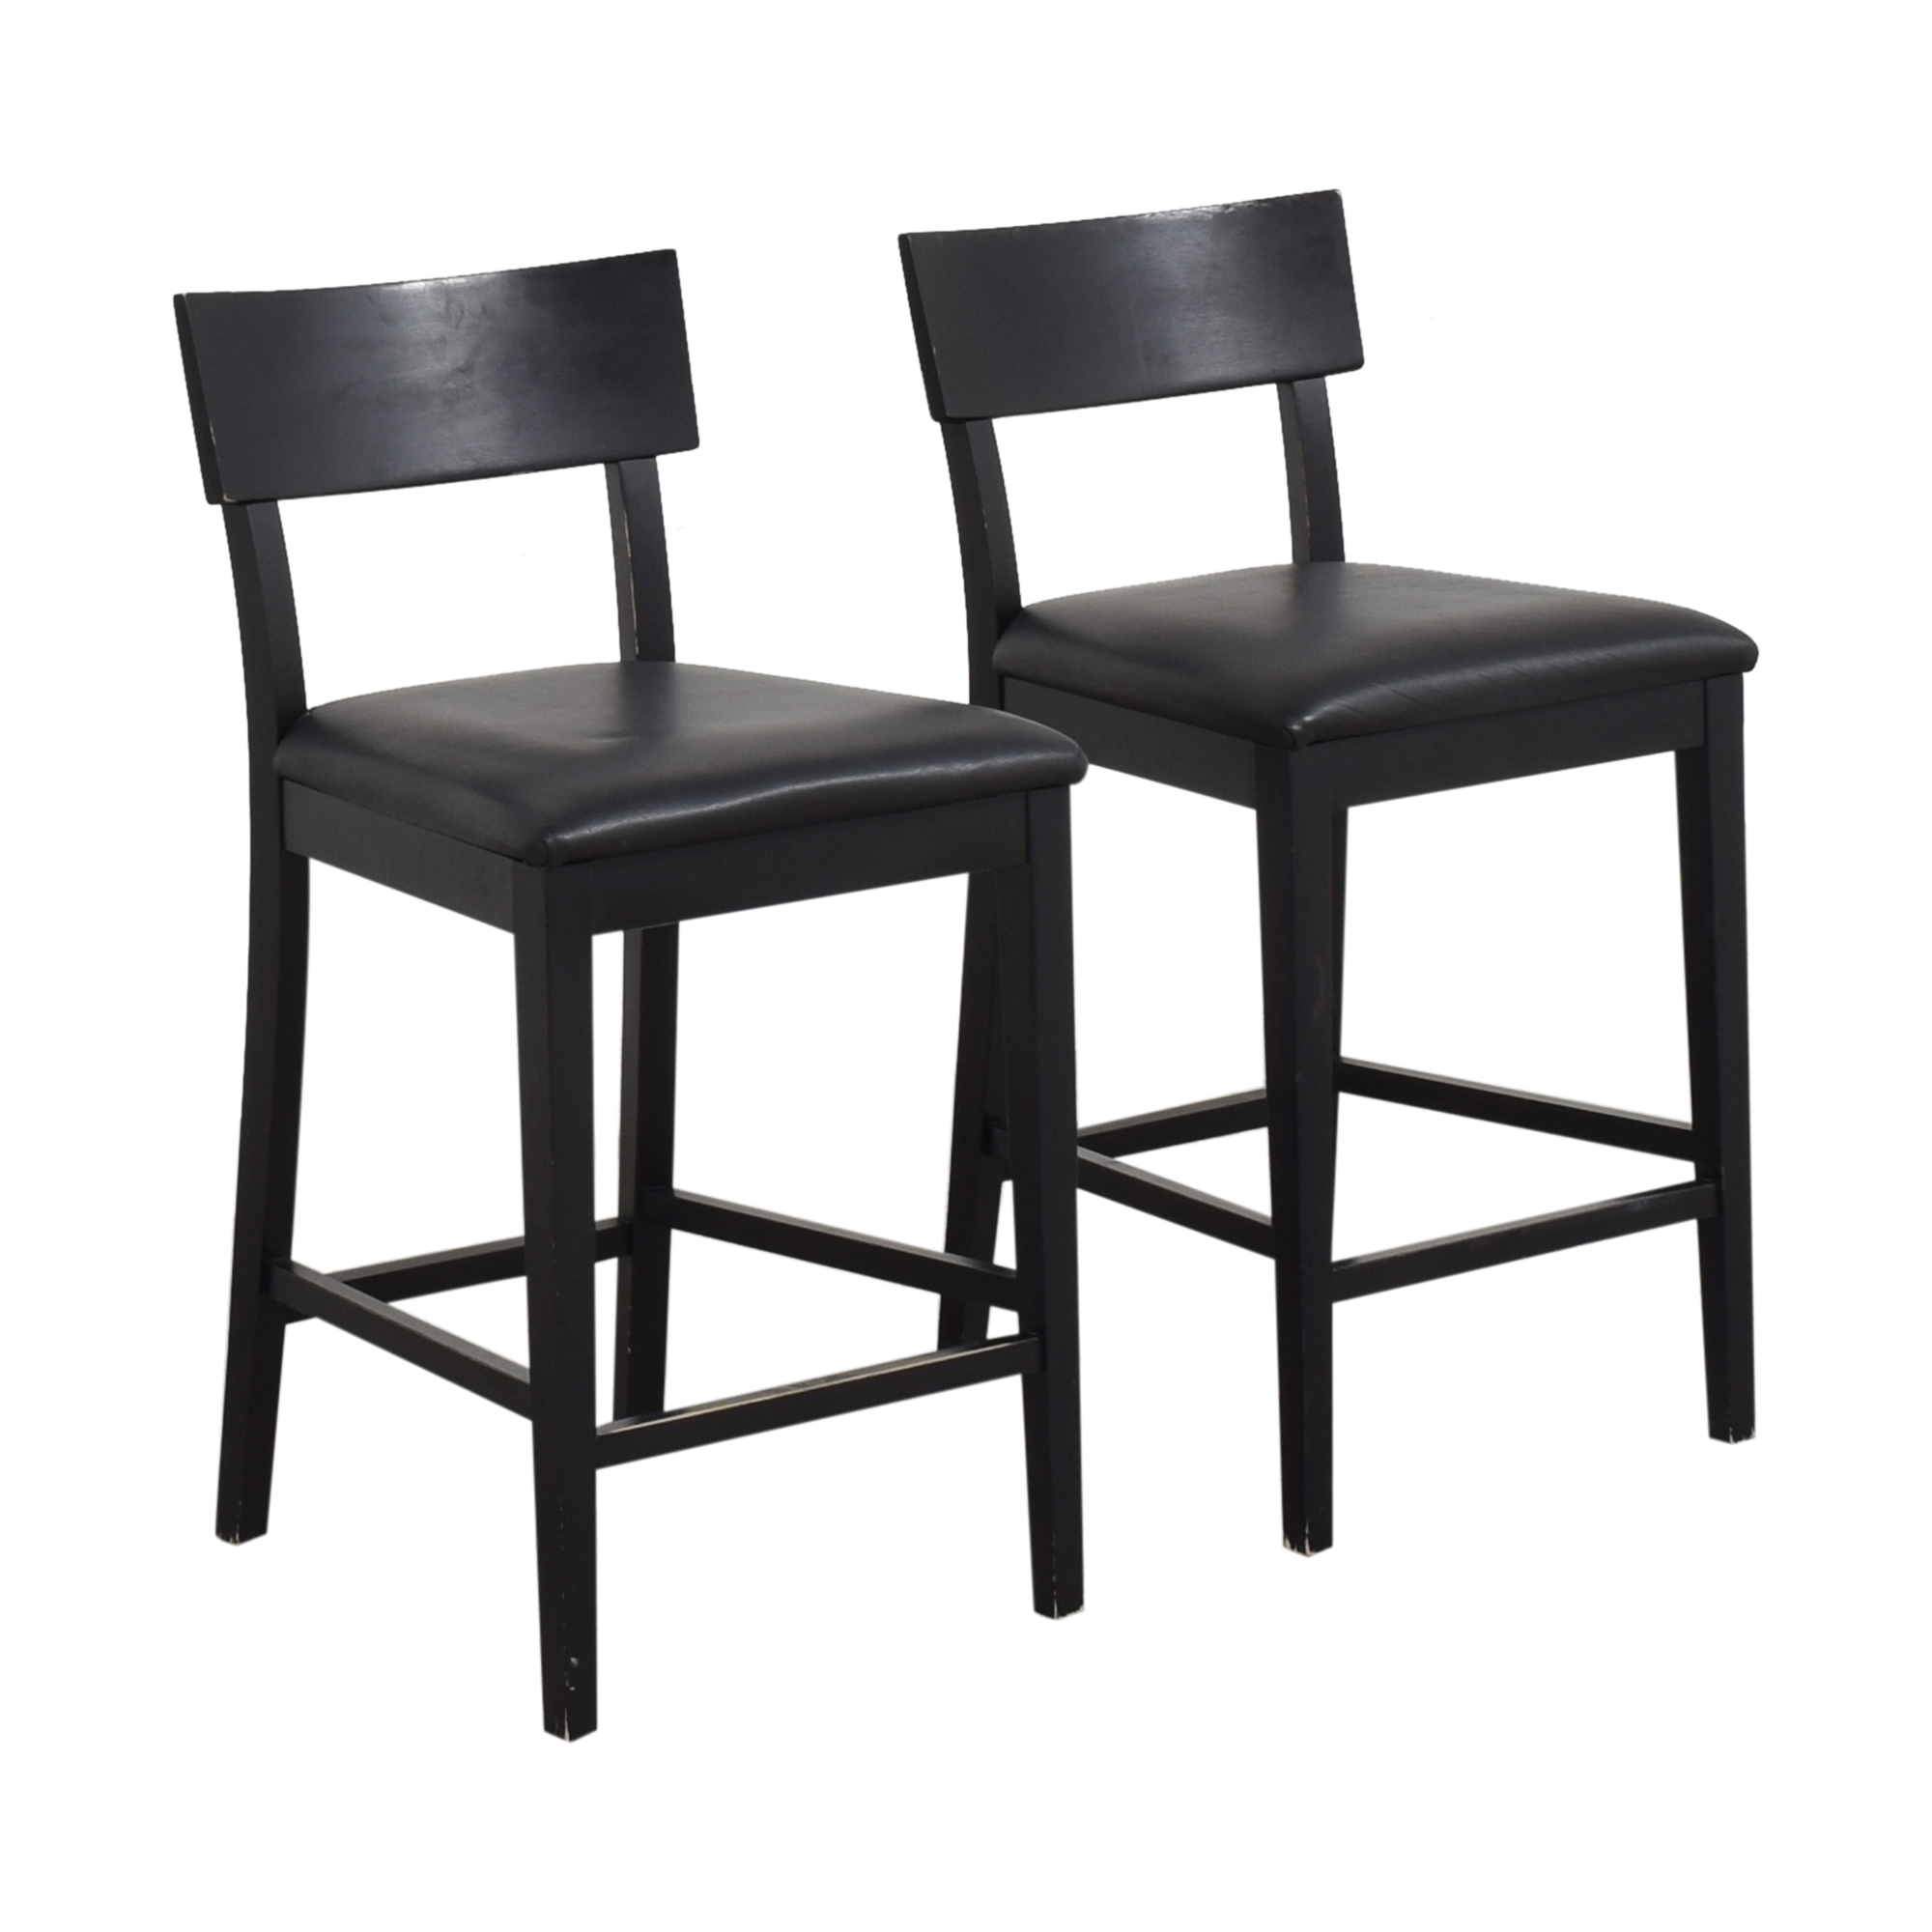 Room & Board Room & Board Doyle Counter Stools second hand